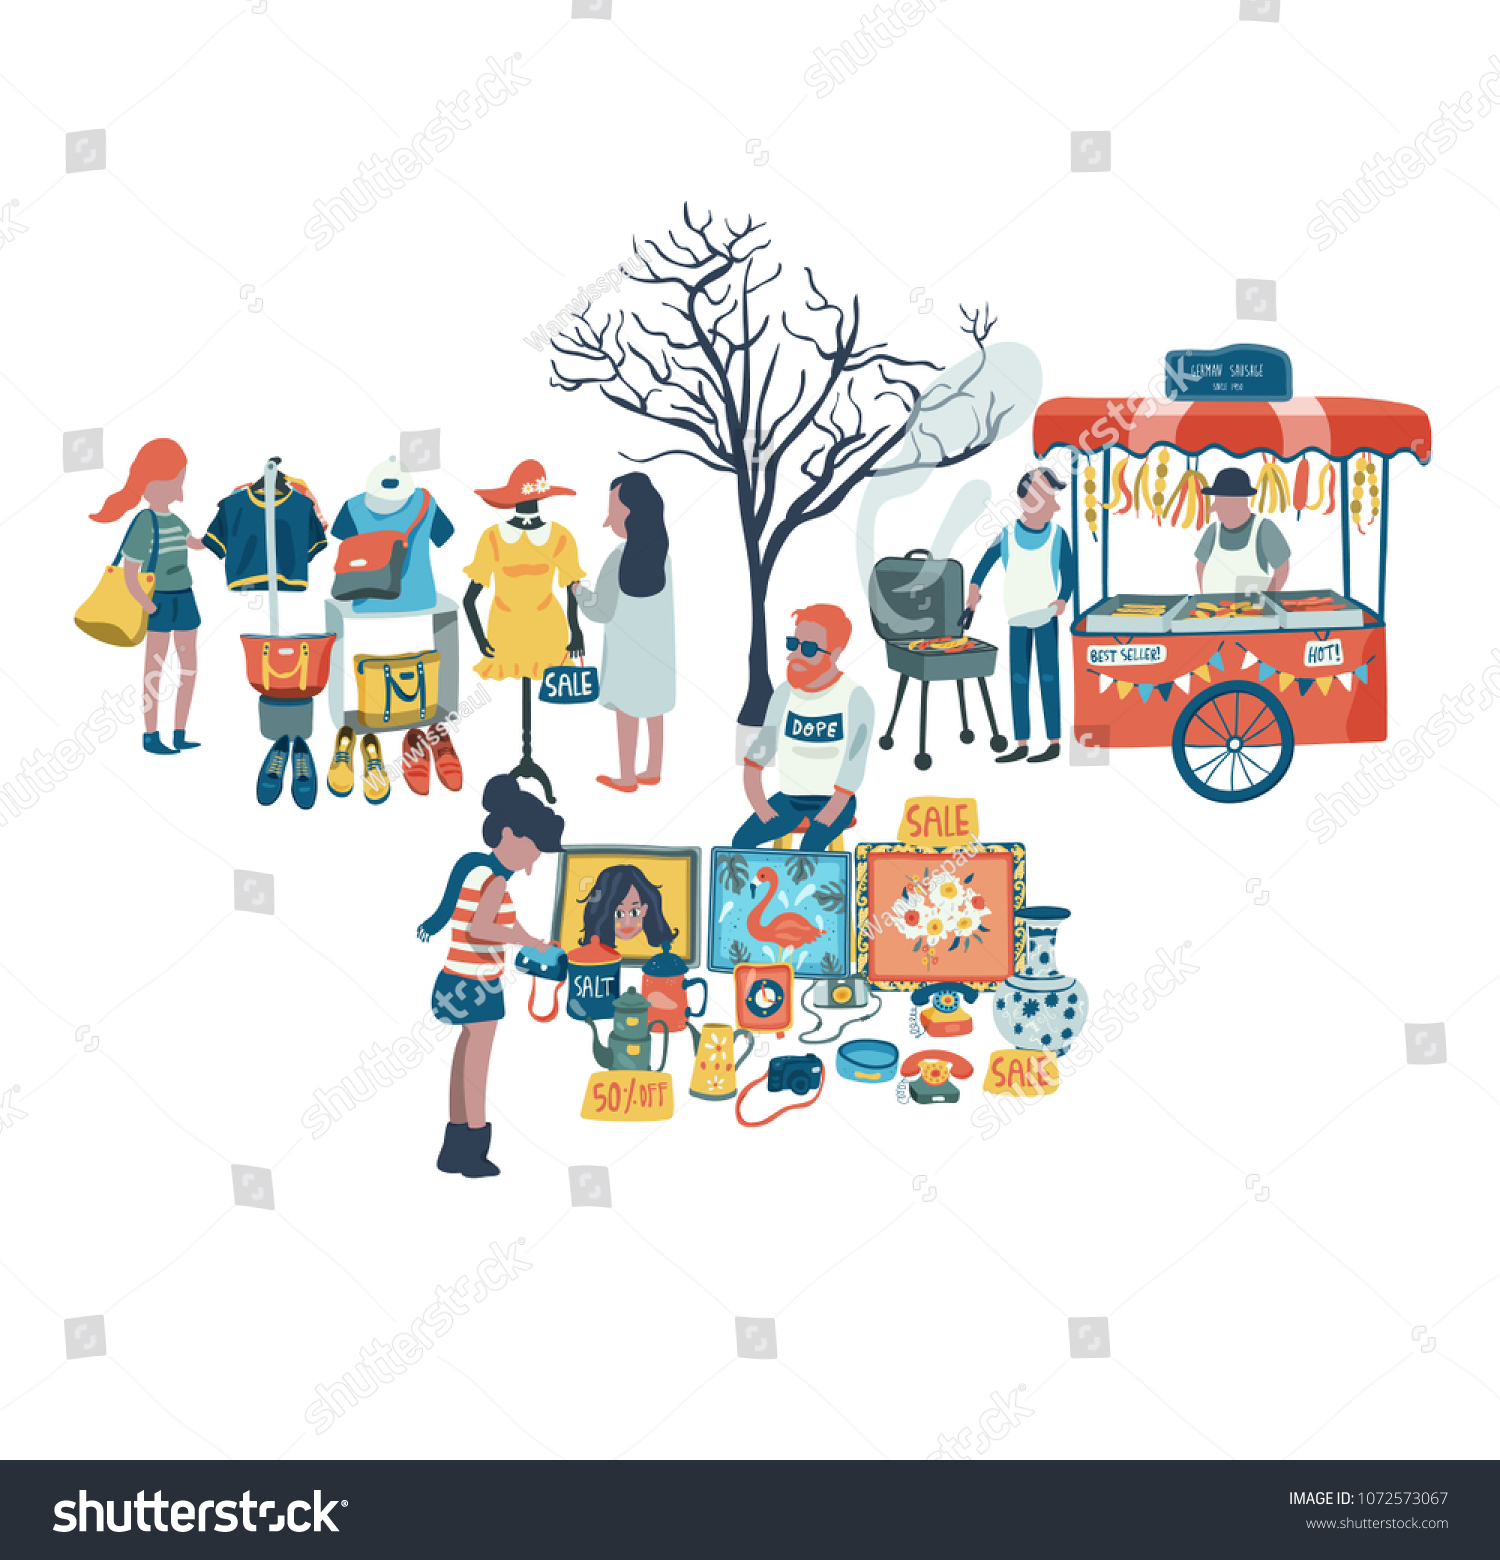 20395ec1017 People Shopping Selling Clothes Secondhand Stuffs Stock Vector ...